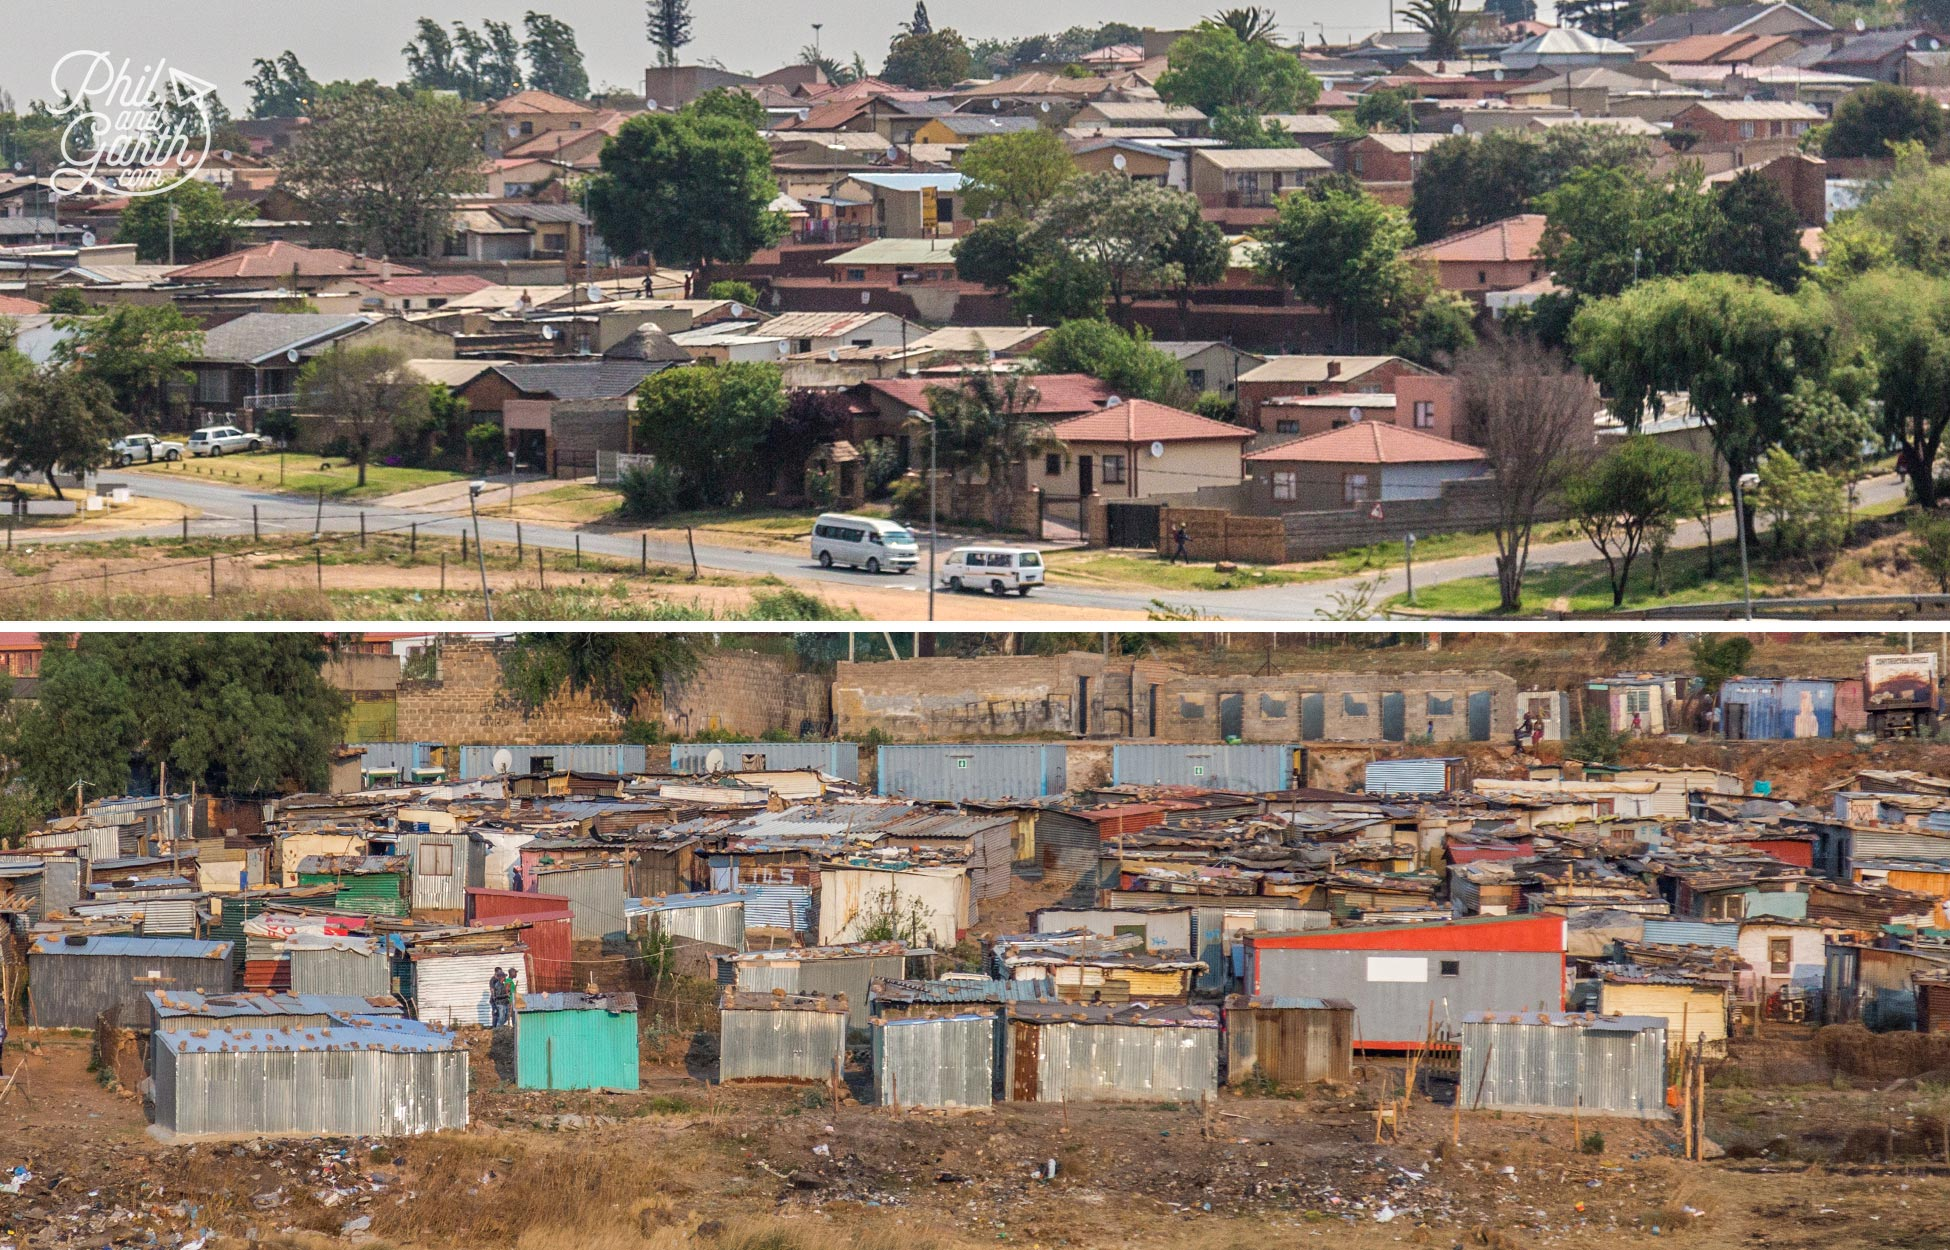 A common sight in Soweto affluent areas sit next to smaller townships